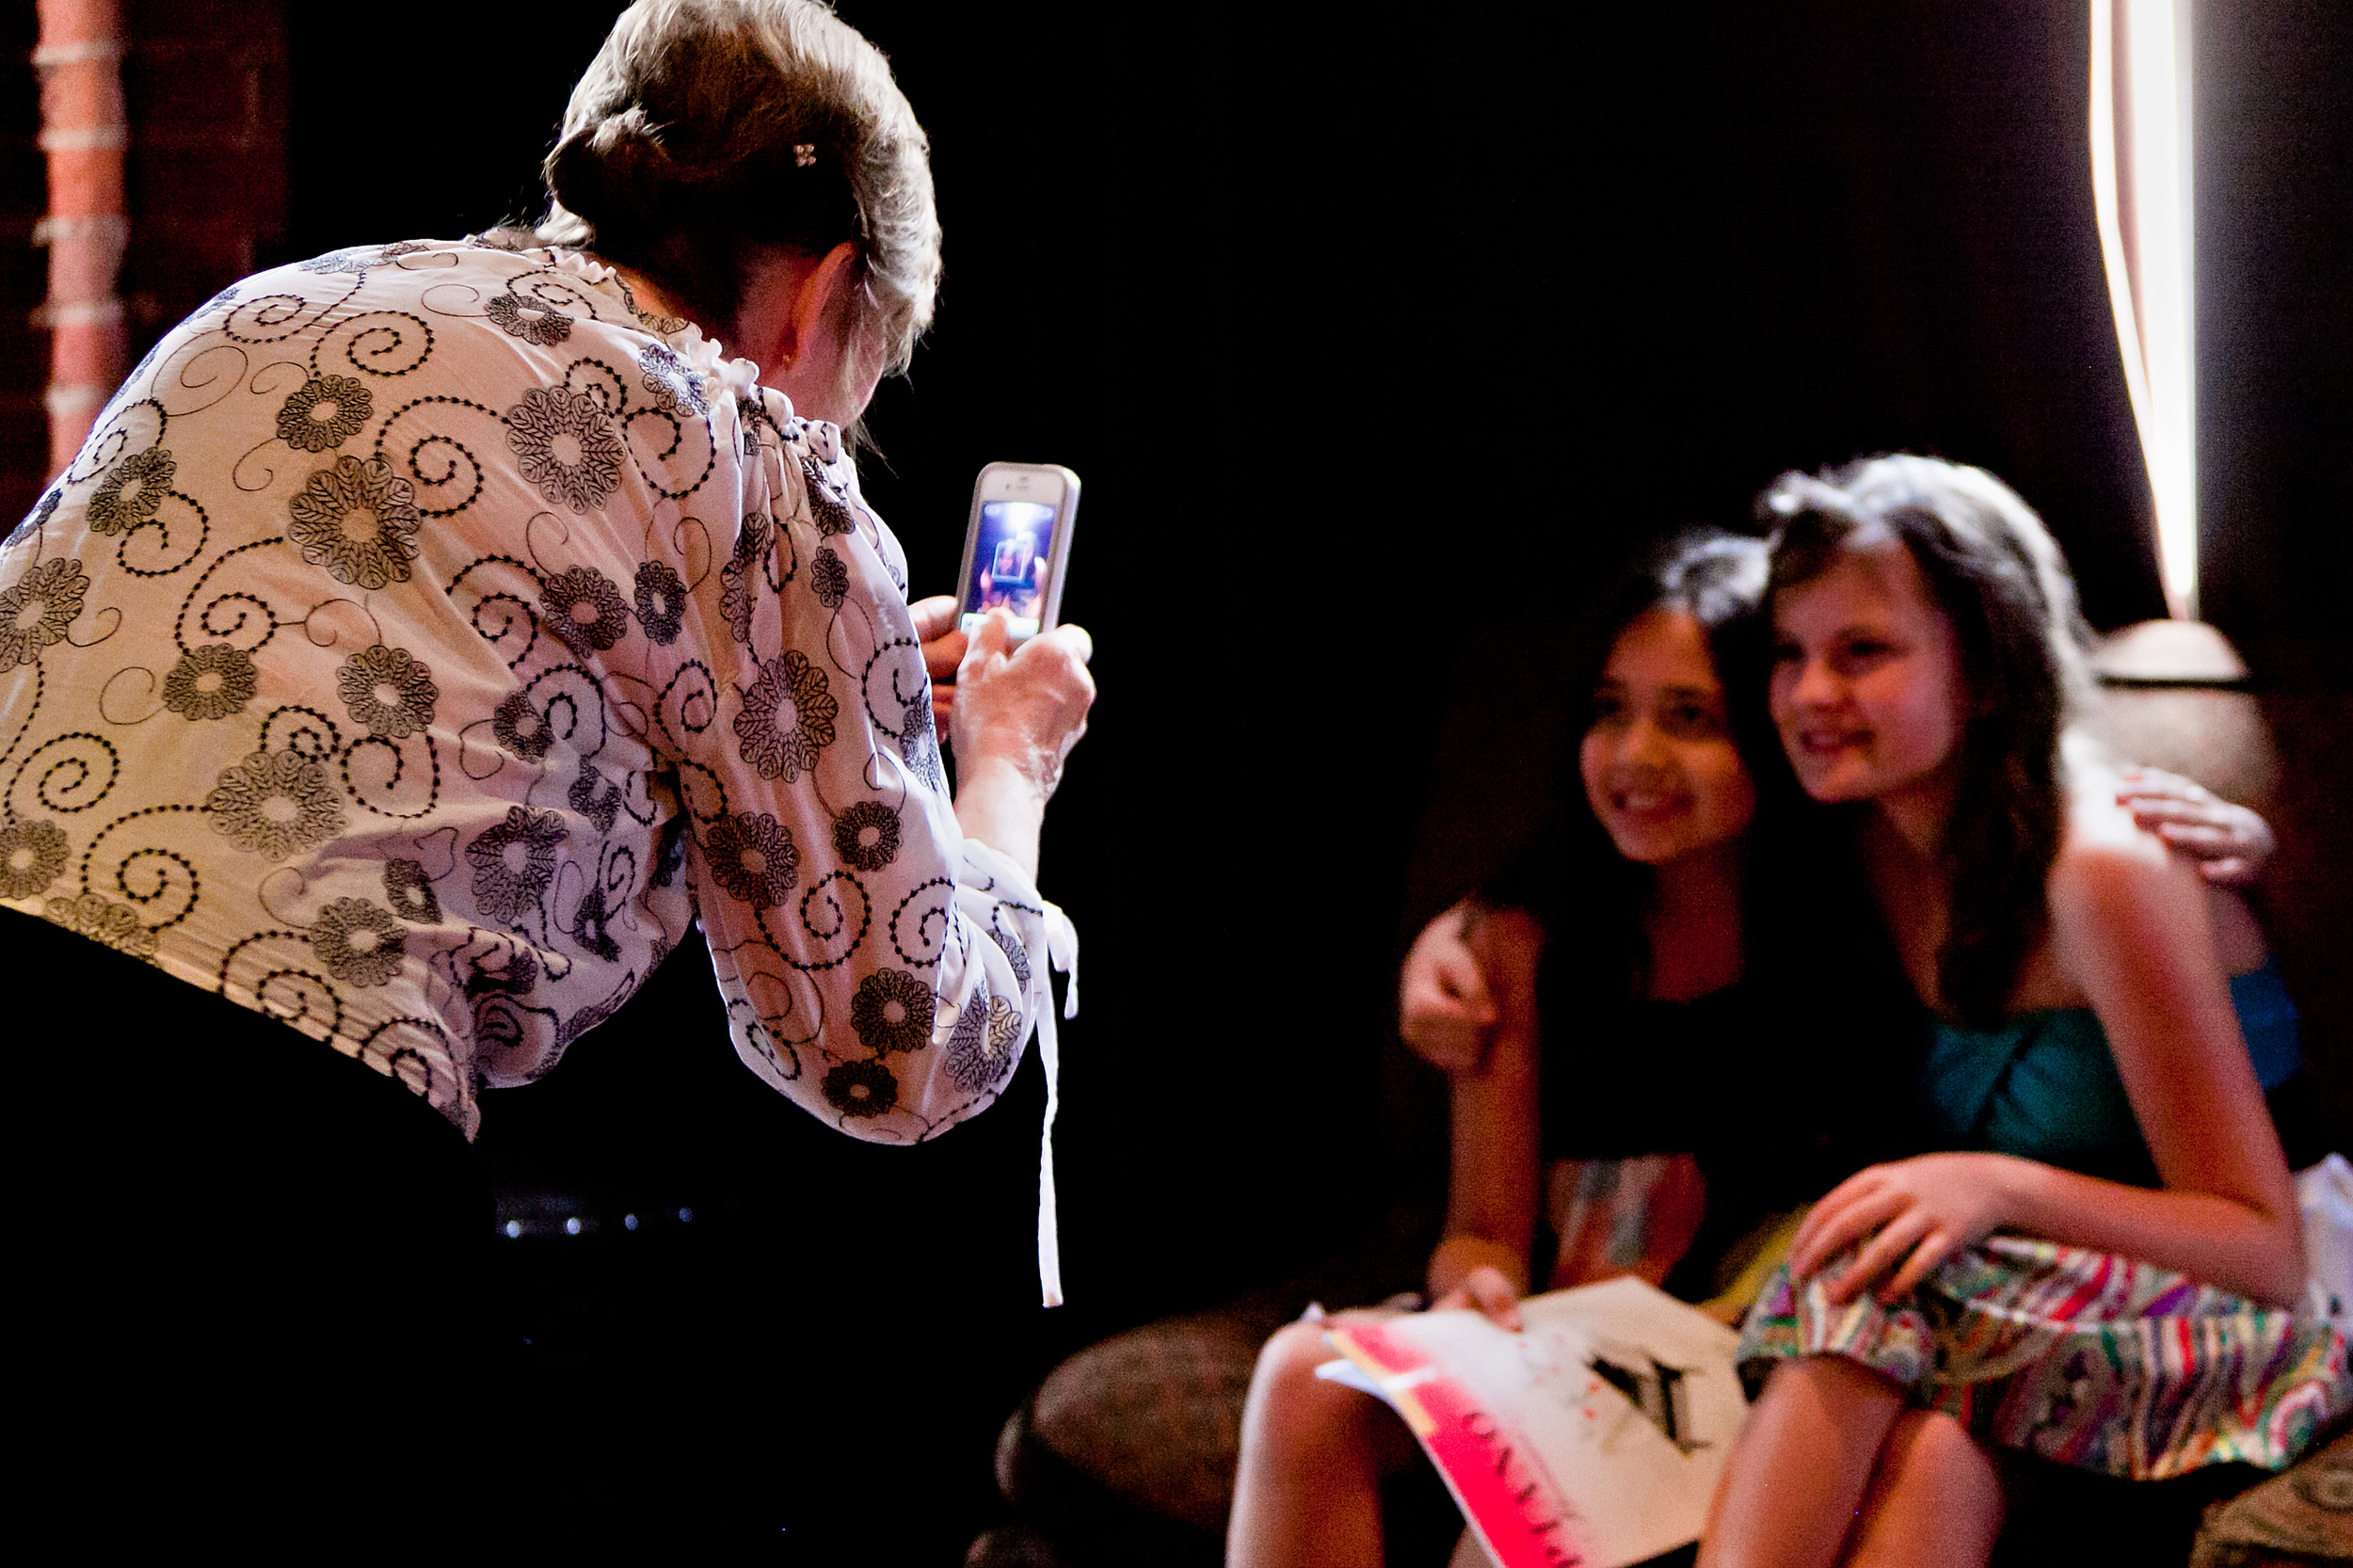 A grandma taking picture of her granddaughters after performing at House of Blues Dallas.